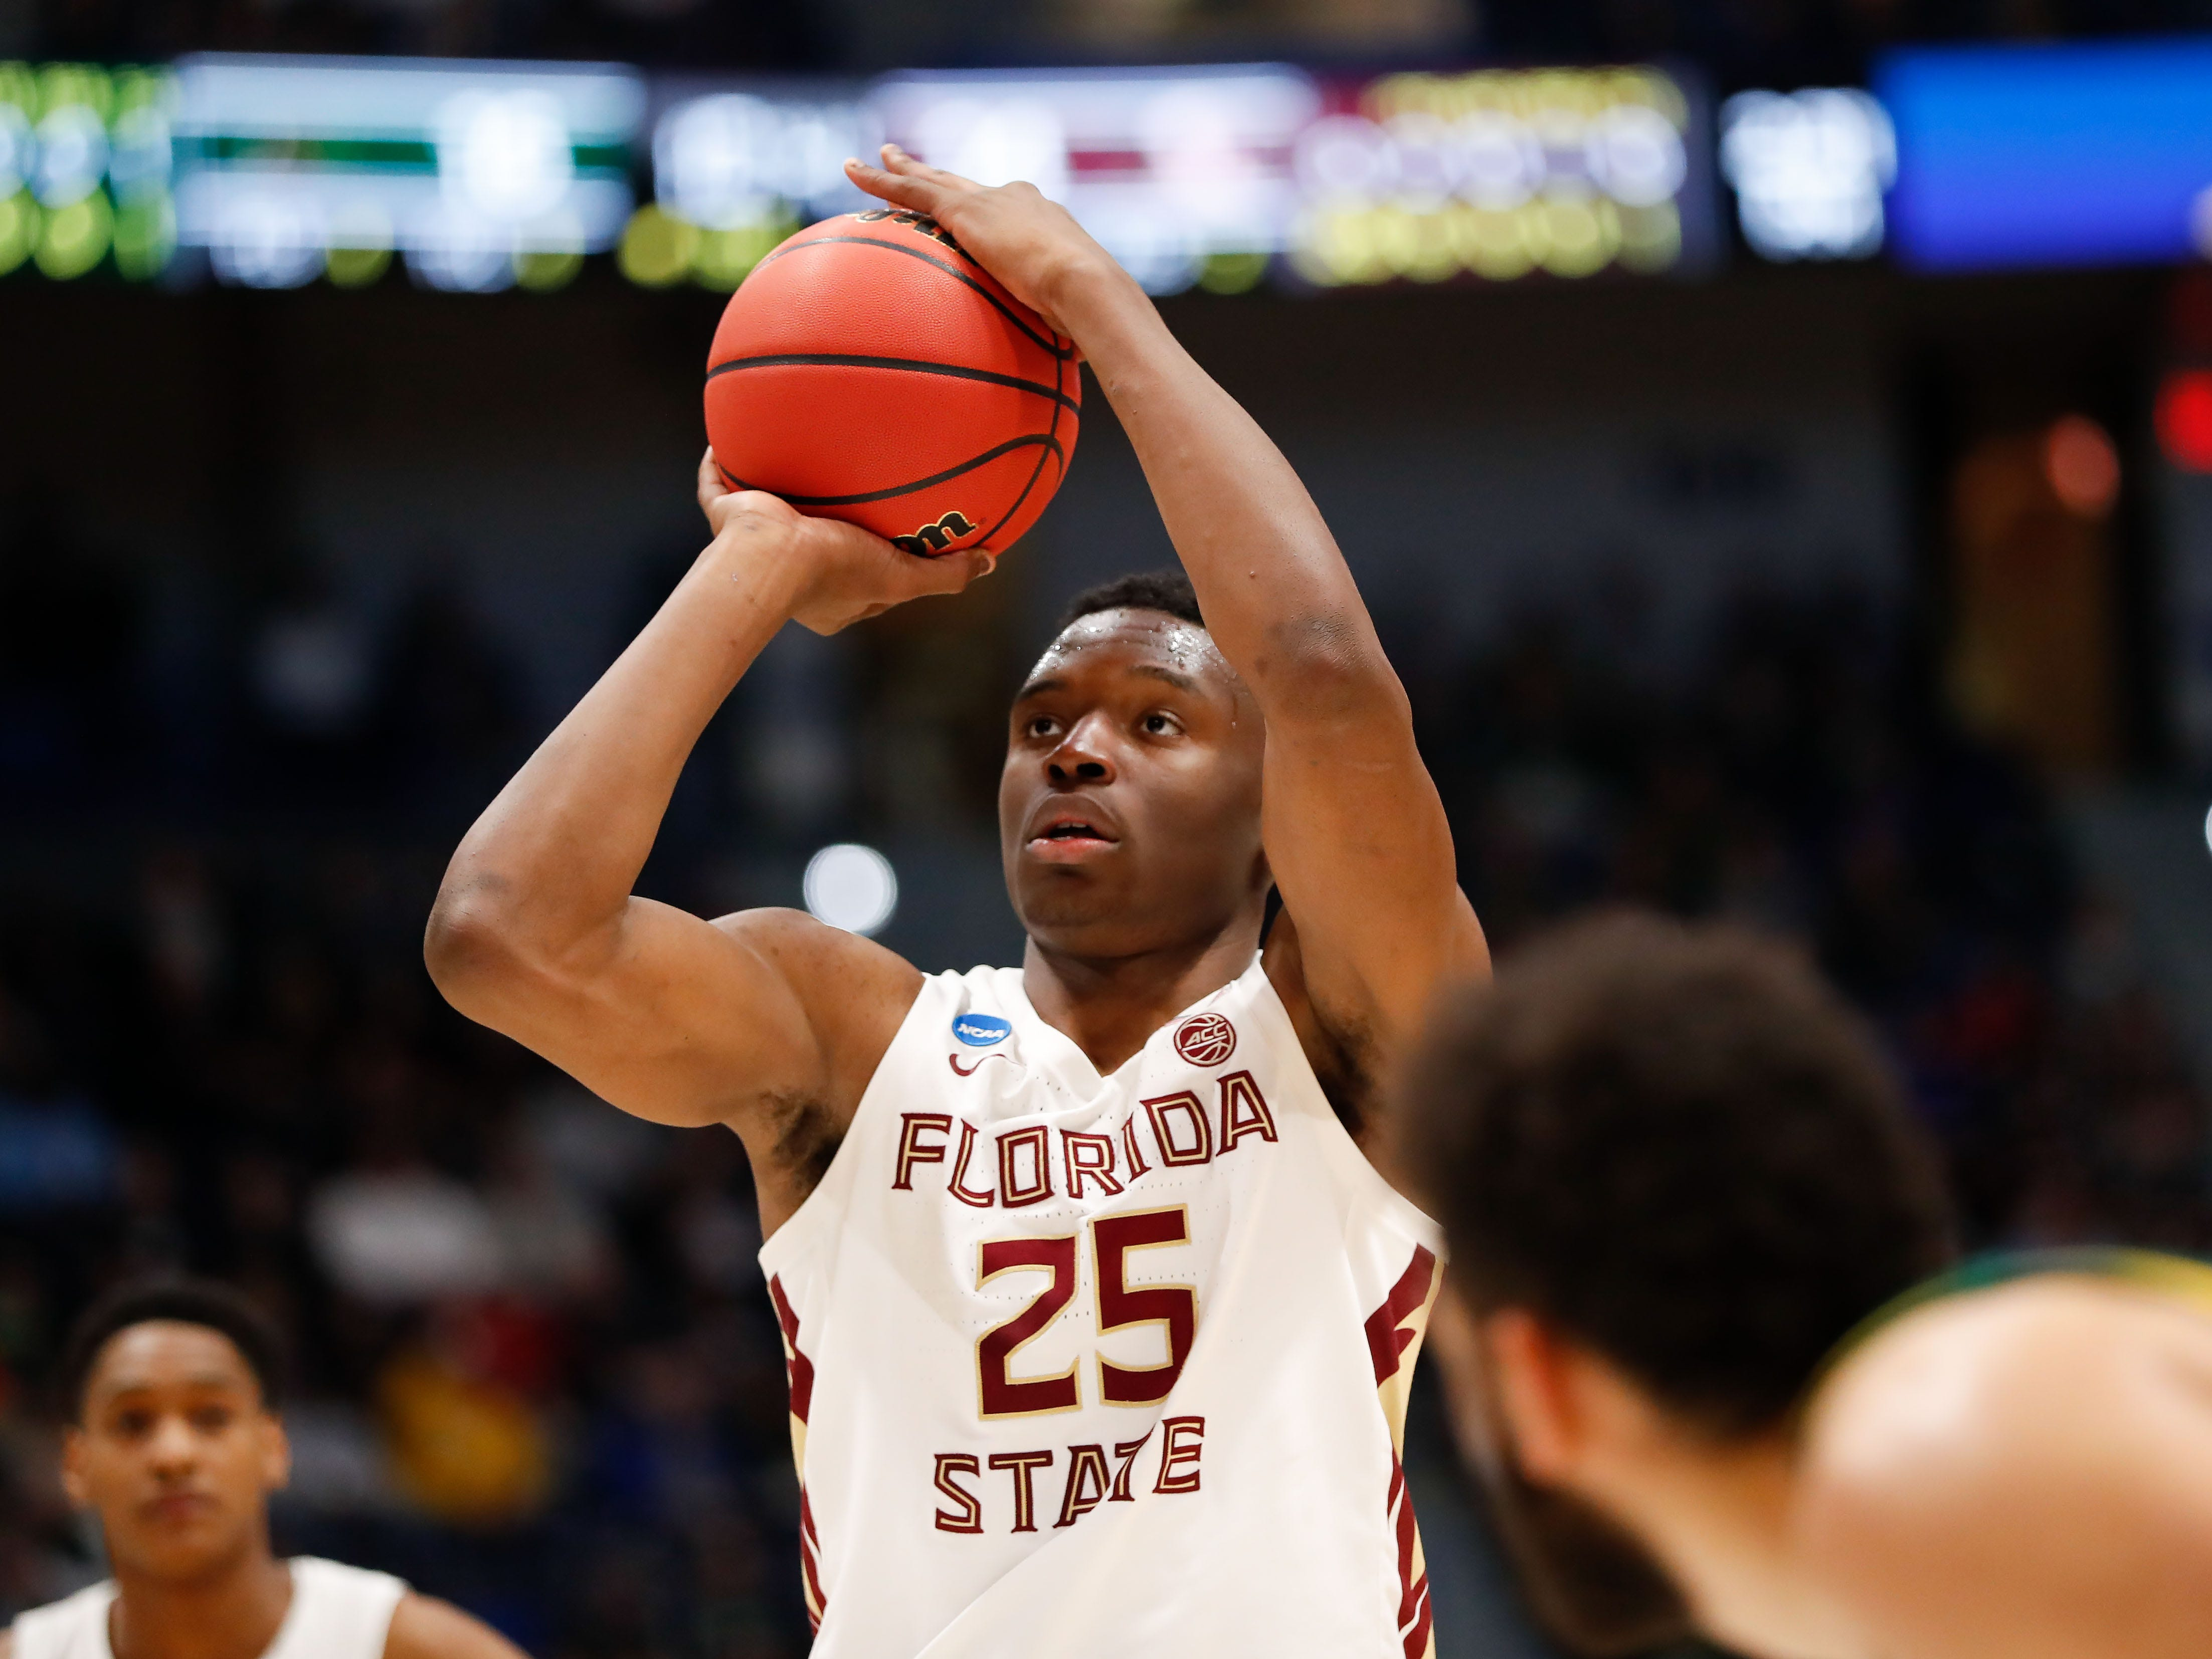 Mar 21, 2019; Hartford, CT, USA; Florida State Seminoles forward Mfiondu Kabengele (25) attempts a free throw against the Vermont Catamounts during the first half of game in the first round of the 2019 NCAA Tournament at XL Center. Mandatory Credit: David Butler II-USA TODAY Sports